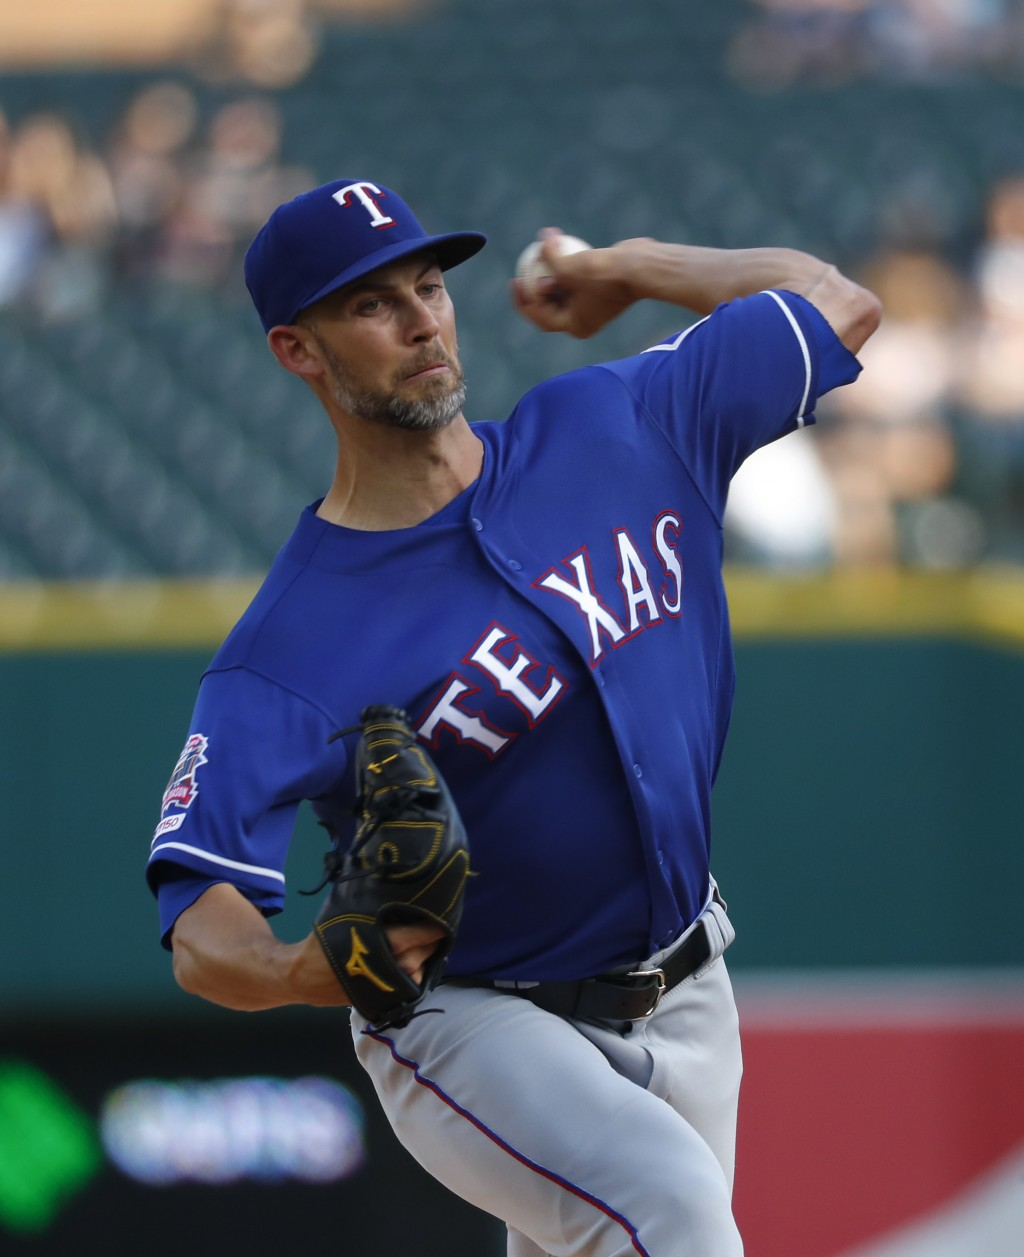 Texas Rangers pitcher Mike Minor throws against the Detroit Tigers in the first inning of a baseball game in Detroit, Wednesday, June 26, 2019. (AP Ph